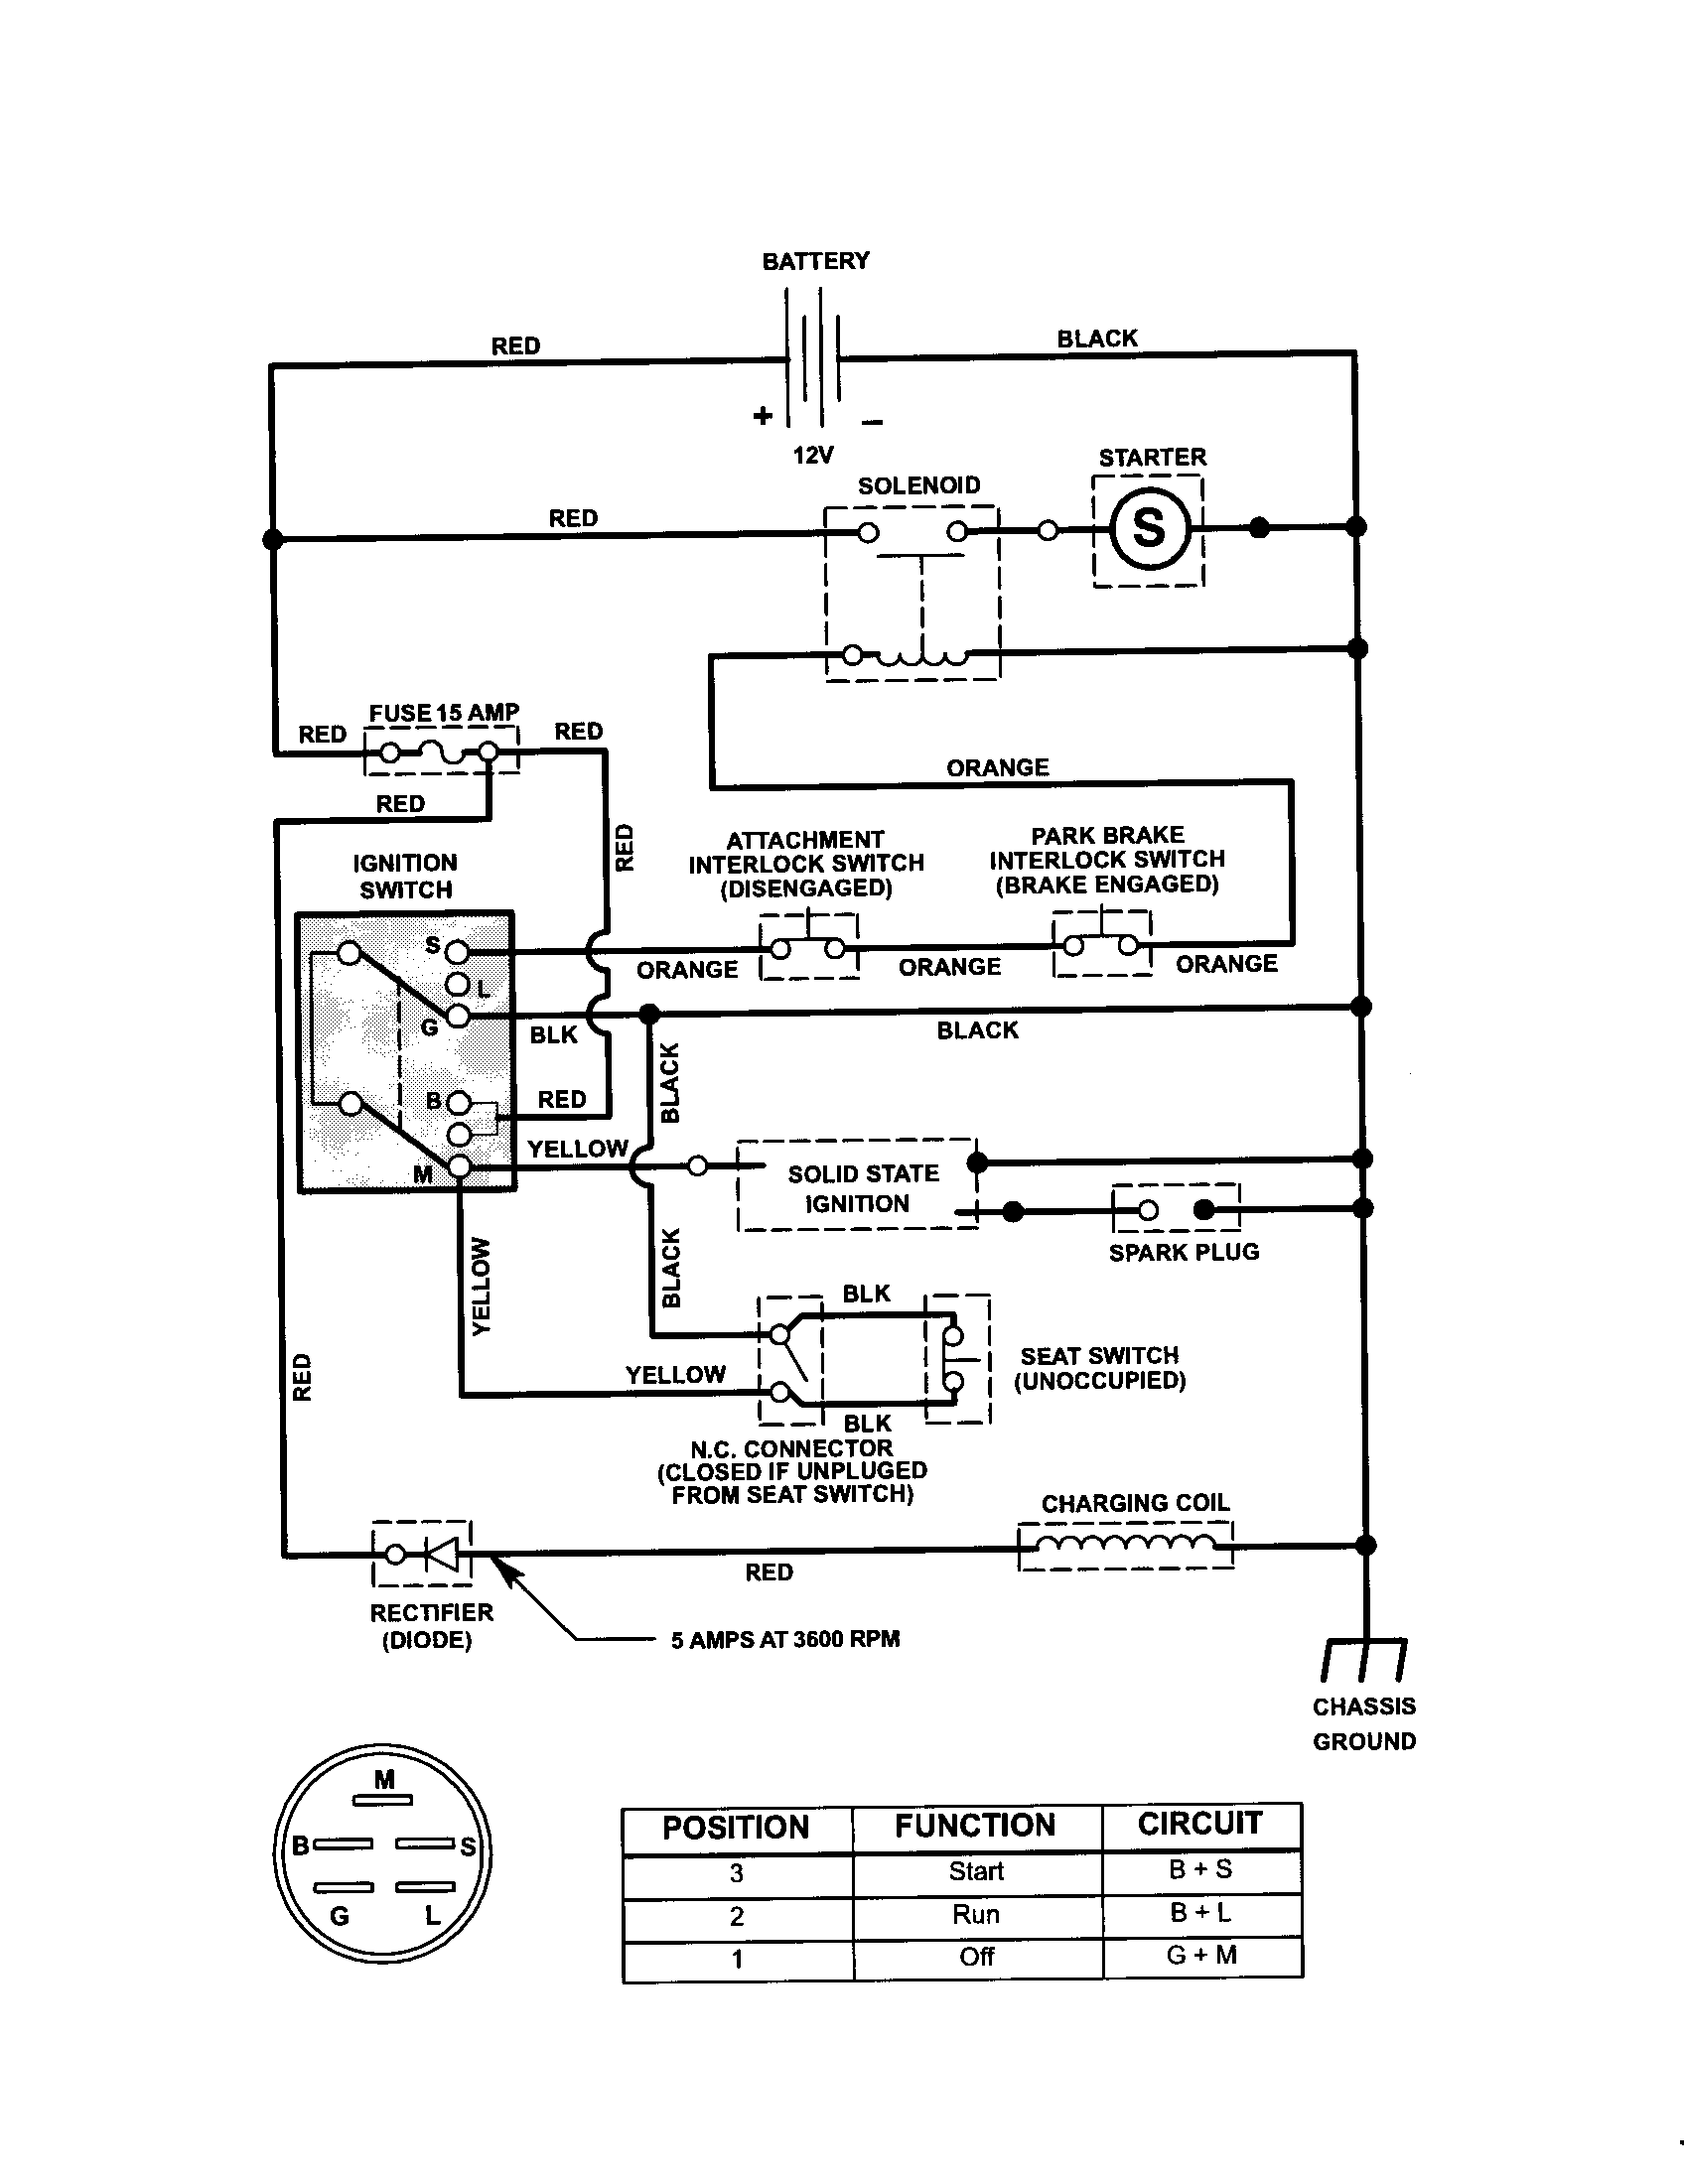 hight resolution of craftsman riding mower electrical diagram pictures of craftsman sears craftsman garage door opener wiring diagram craftsman